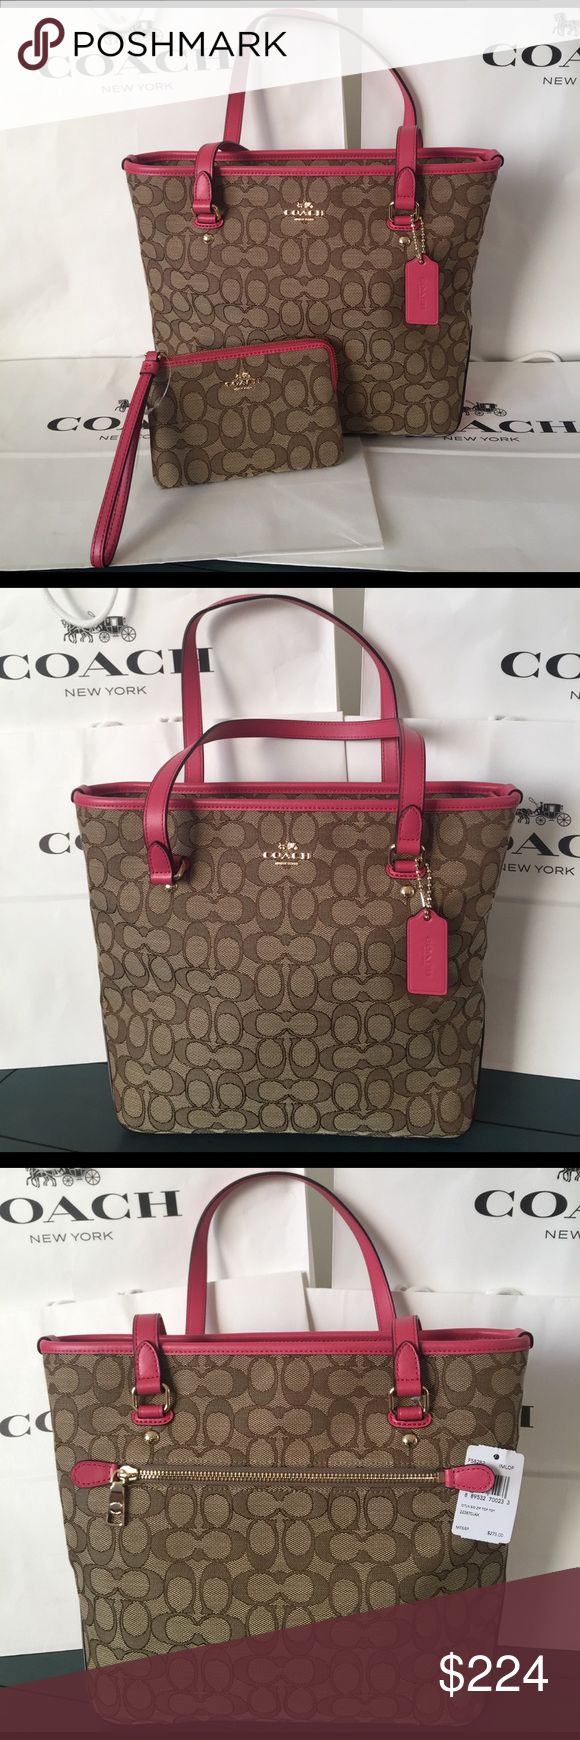 """💖 Coach Tote Bag and Wristlet Set 100% Authentic Coach Bag. Color Brown/Strawberry. Set Includes bag and matching wristlet. Straps with 9"""" drop. Coach Bags Totes"""